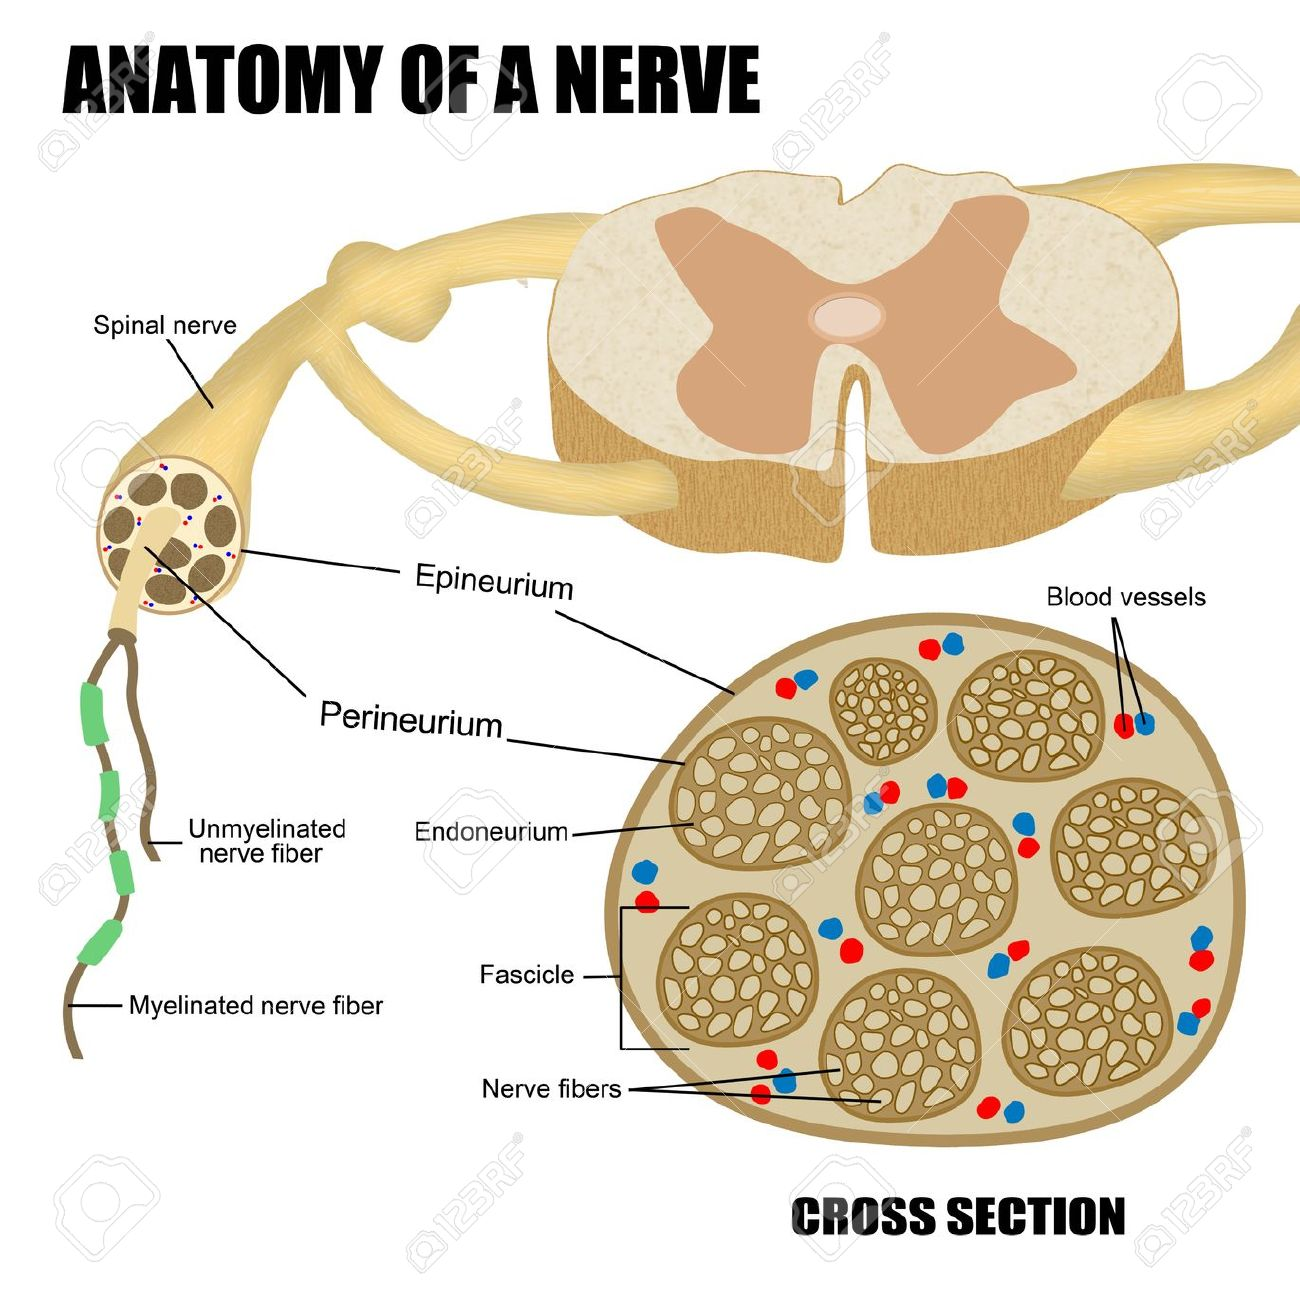 Anatomy Of A Nerve For Basic Medical Education, For Clinics.. Stock ...